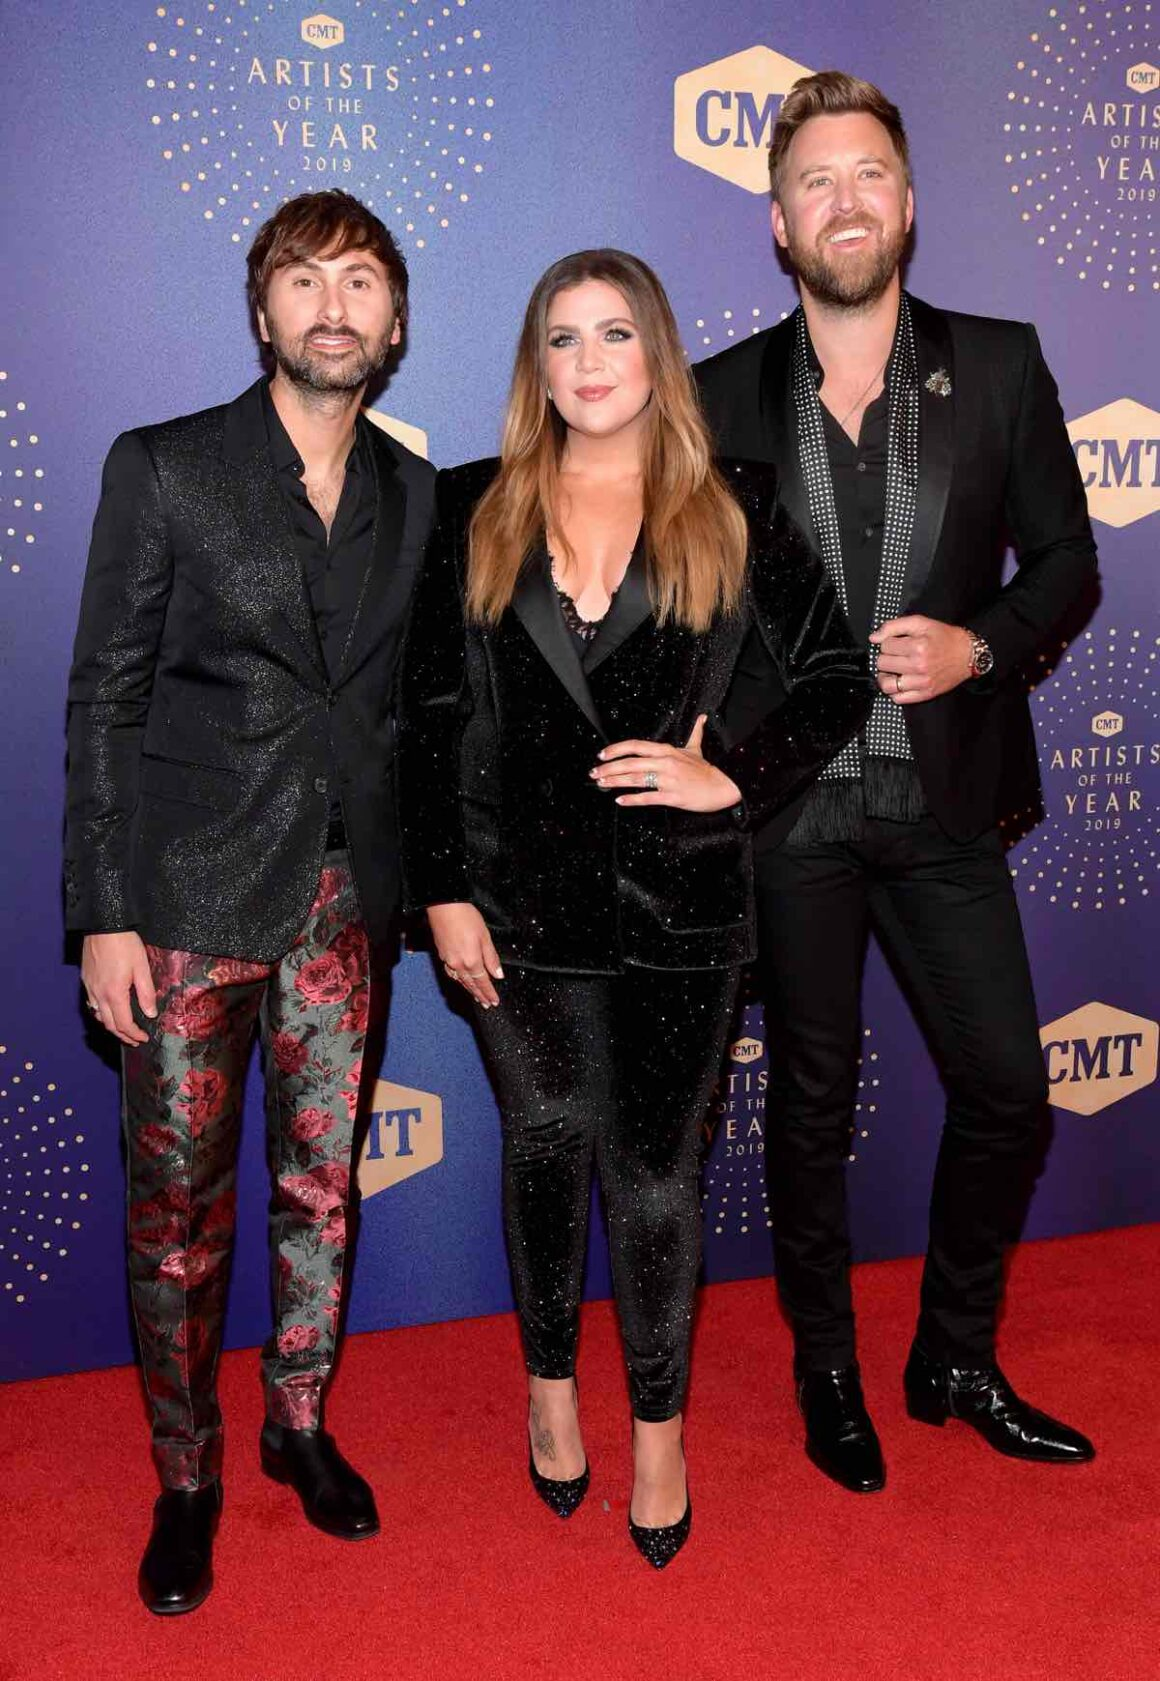 Lady Antebellum 2019 CMT Artist of the Year - Red Carpet